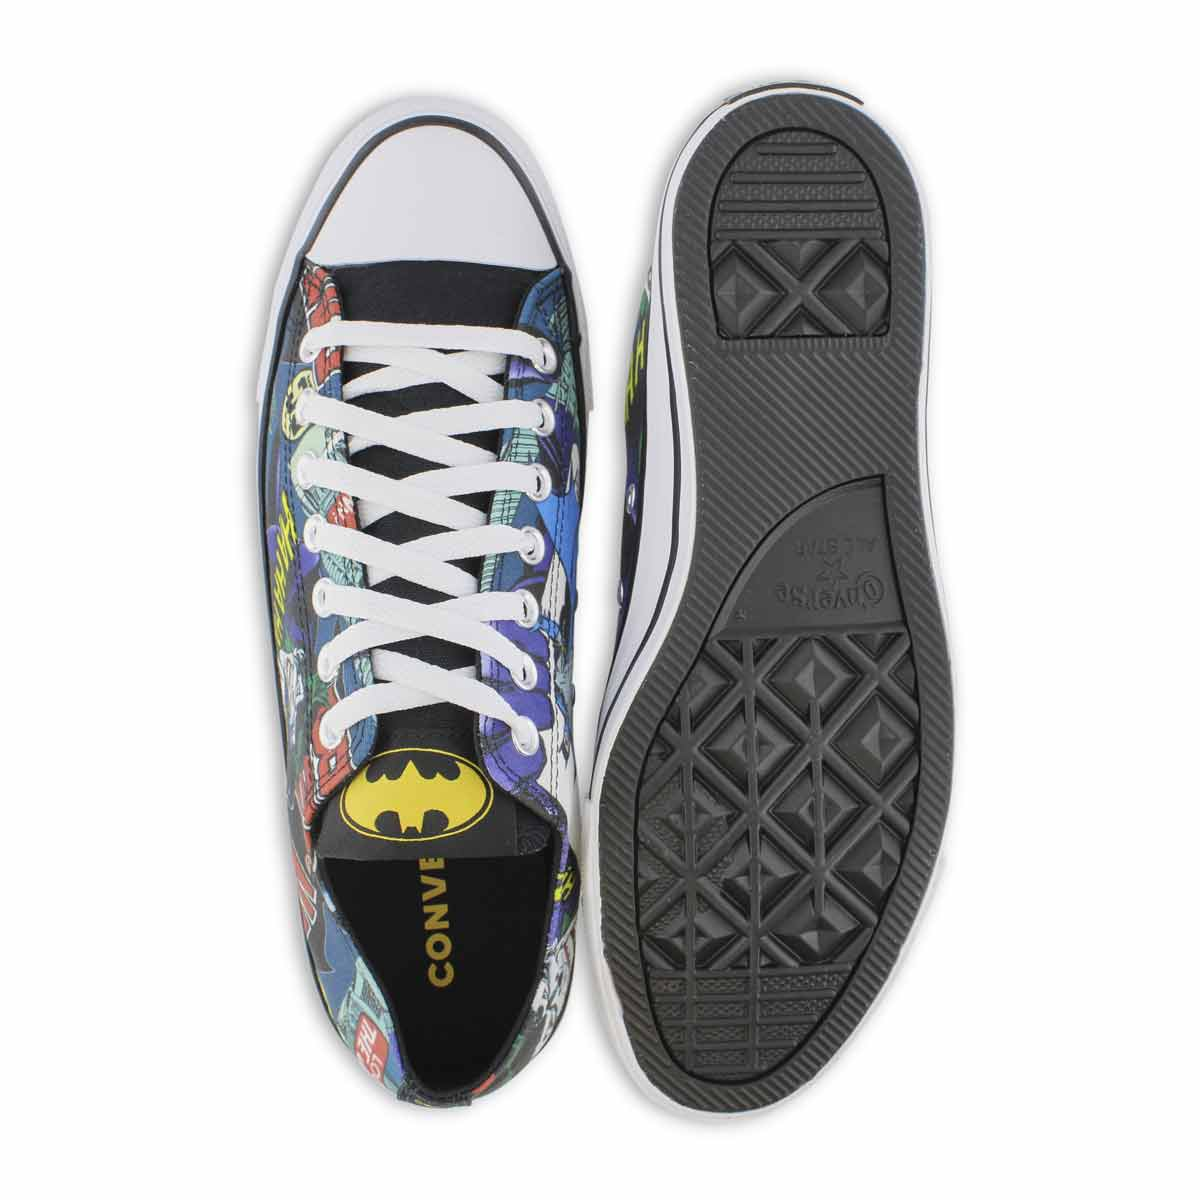 Mns Batman multi/wht oxford sneaker